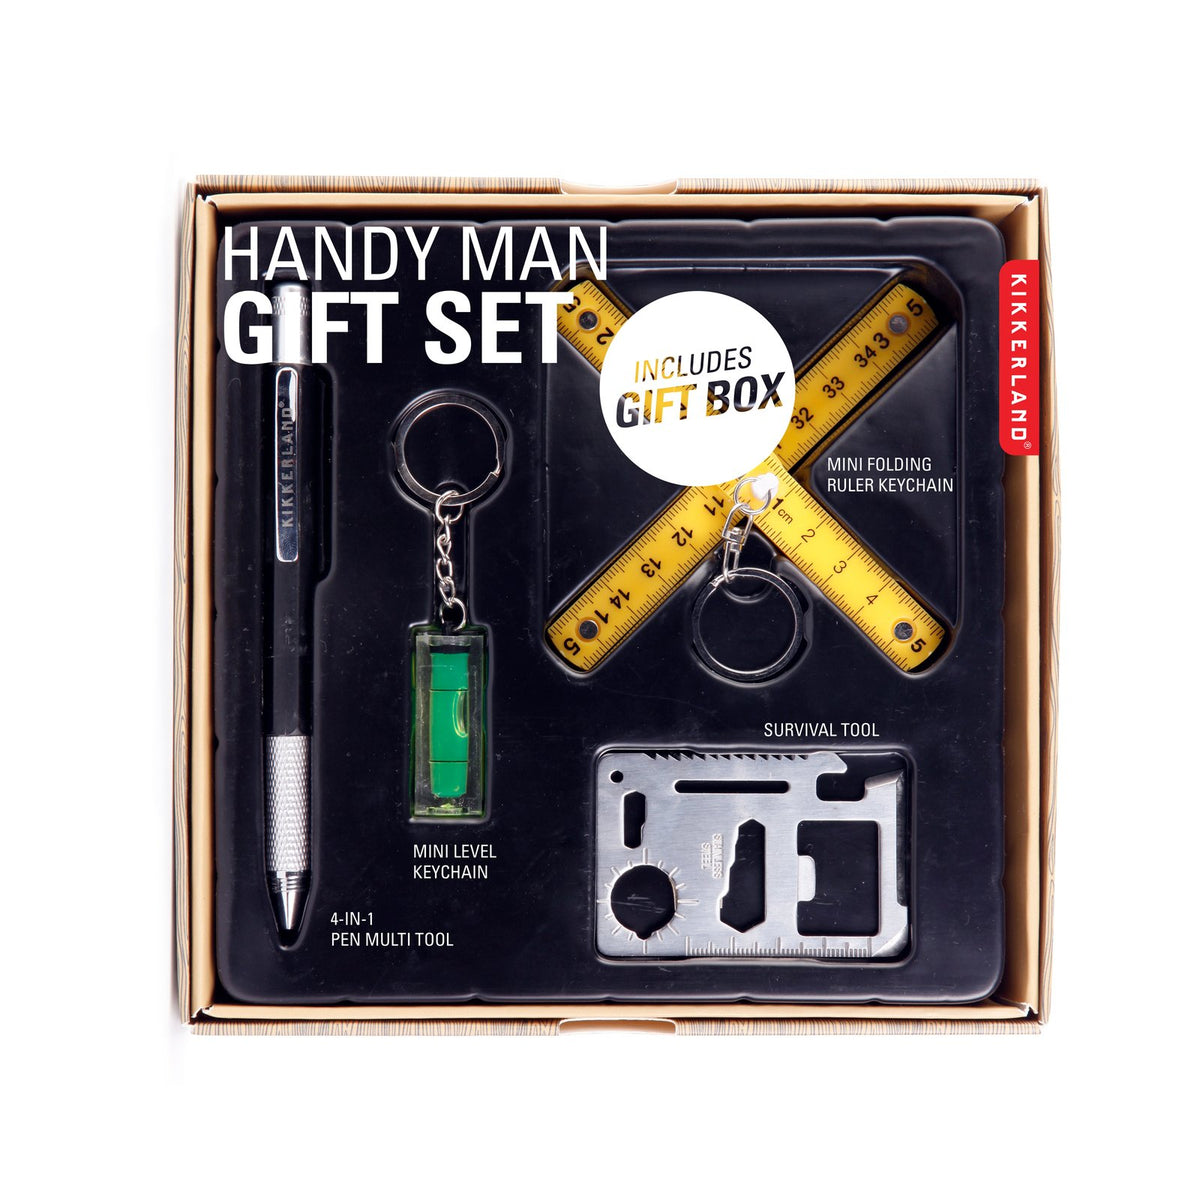 Handy Man Gift Set